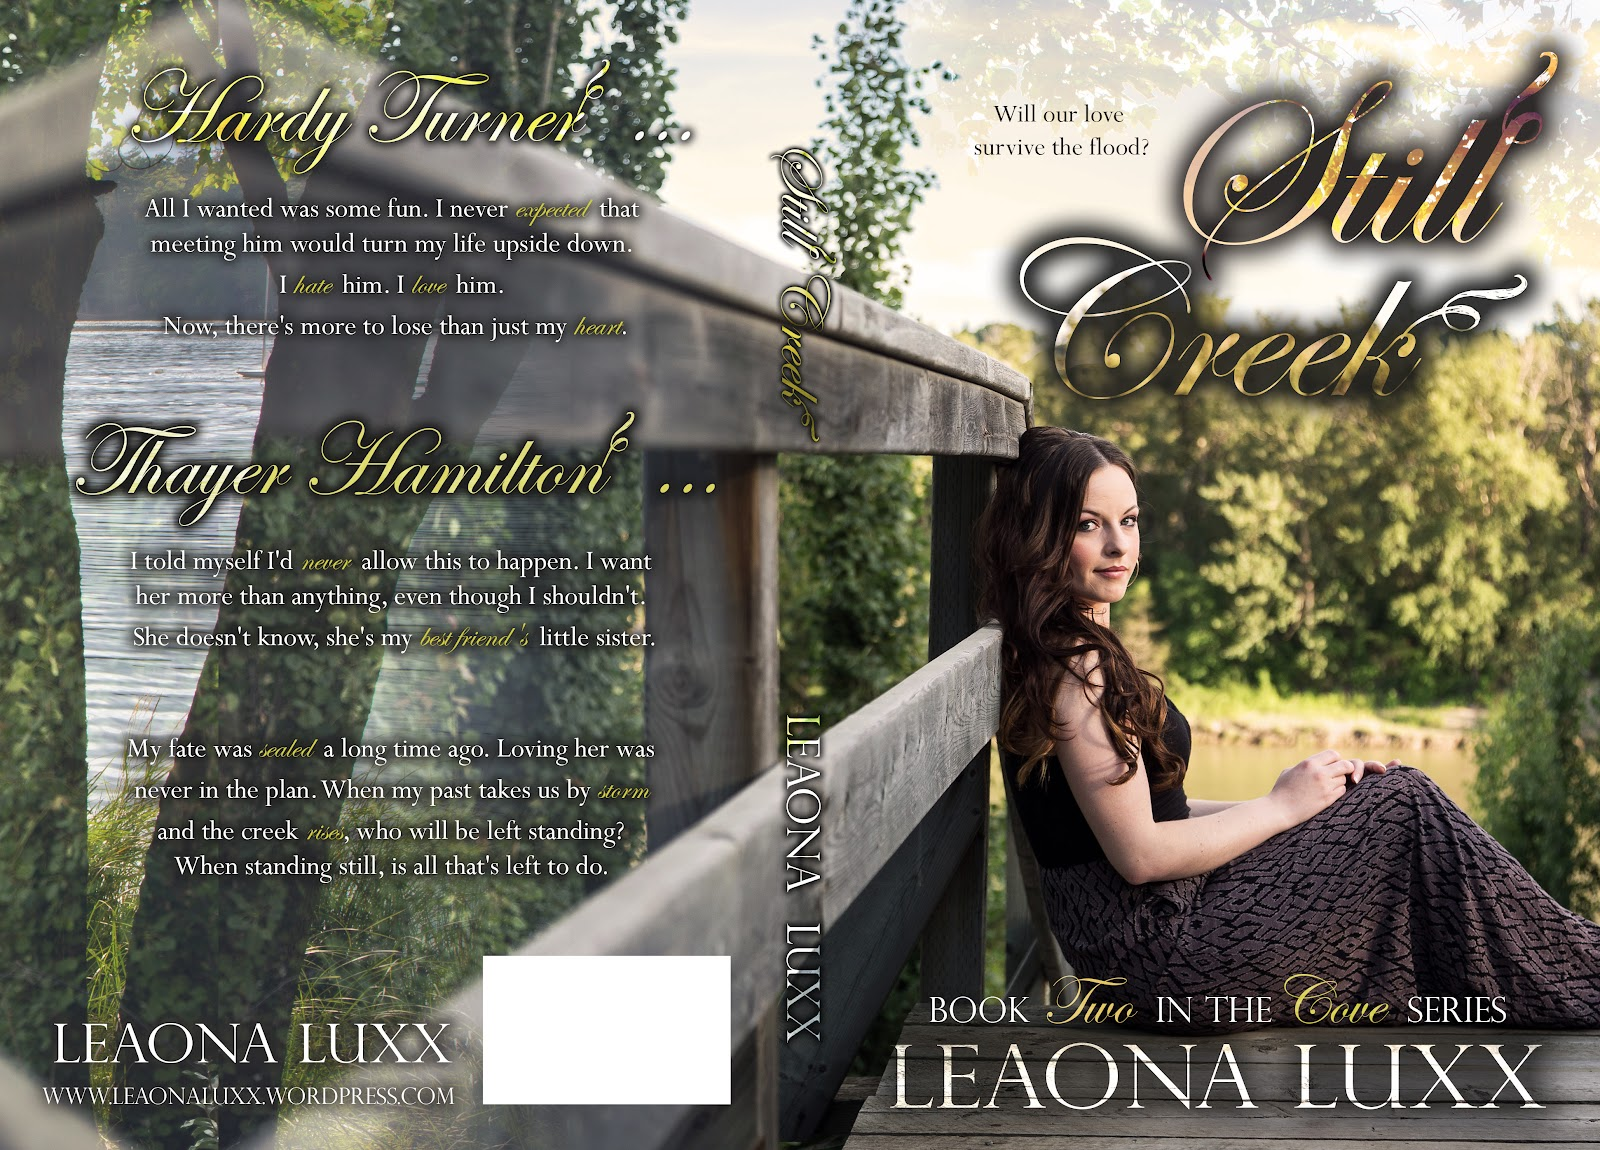 Still Creek Leaona Luxx Cover MOCK 2.jpg